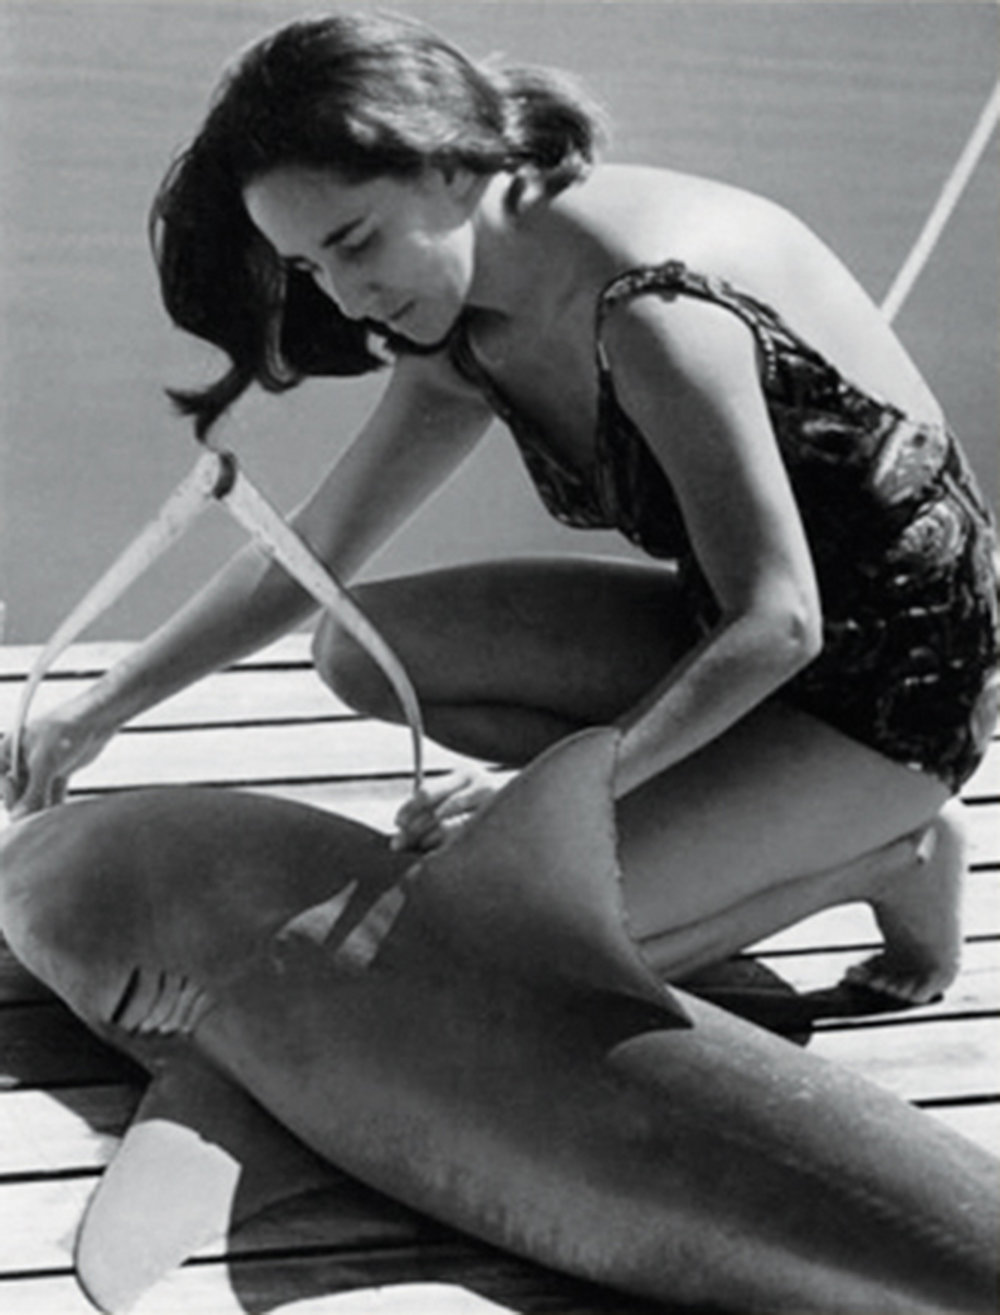 Genie measures a bull shark